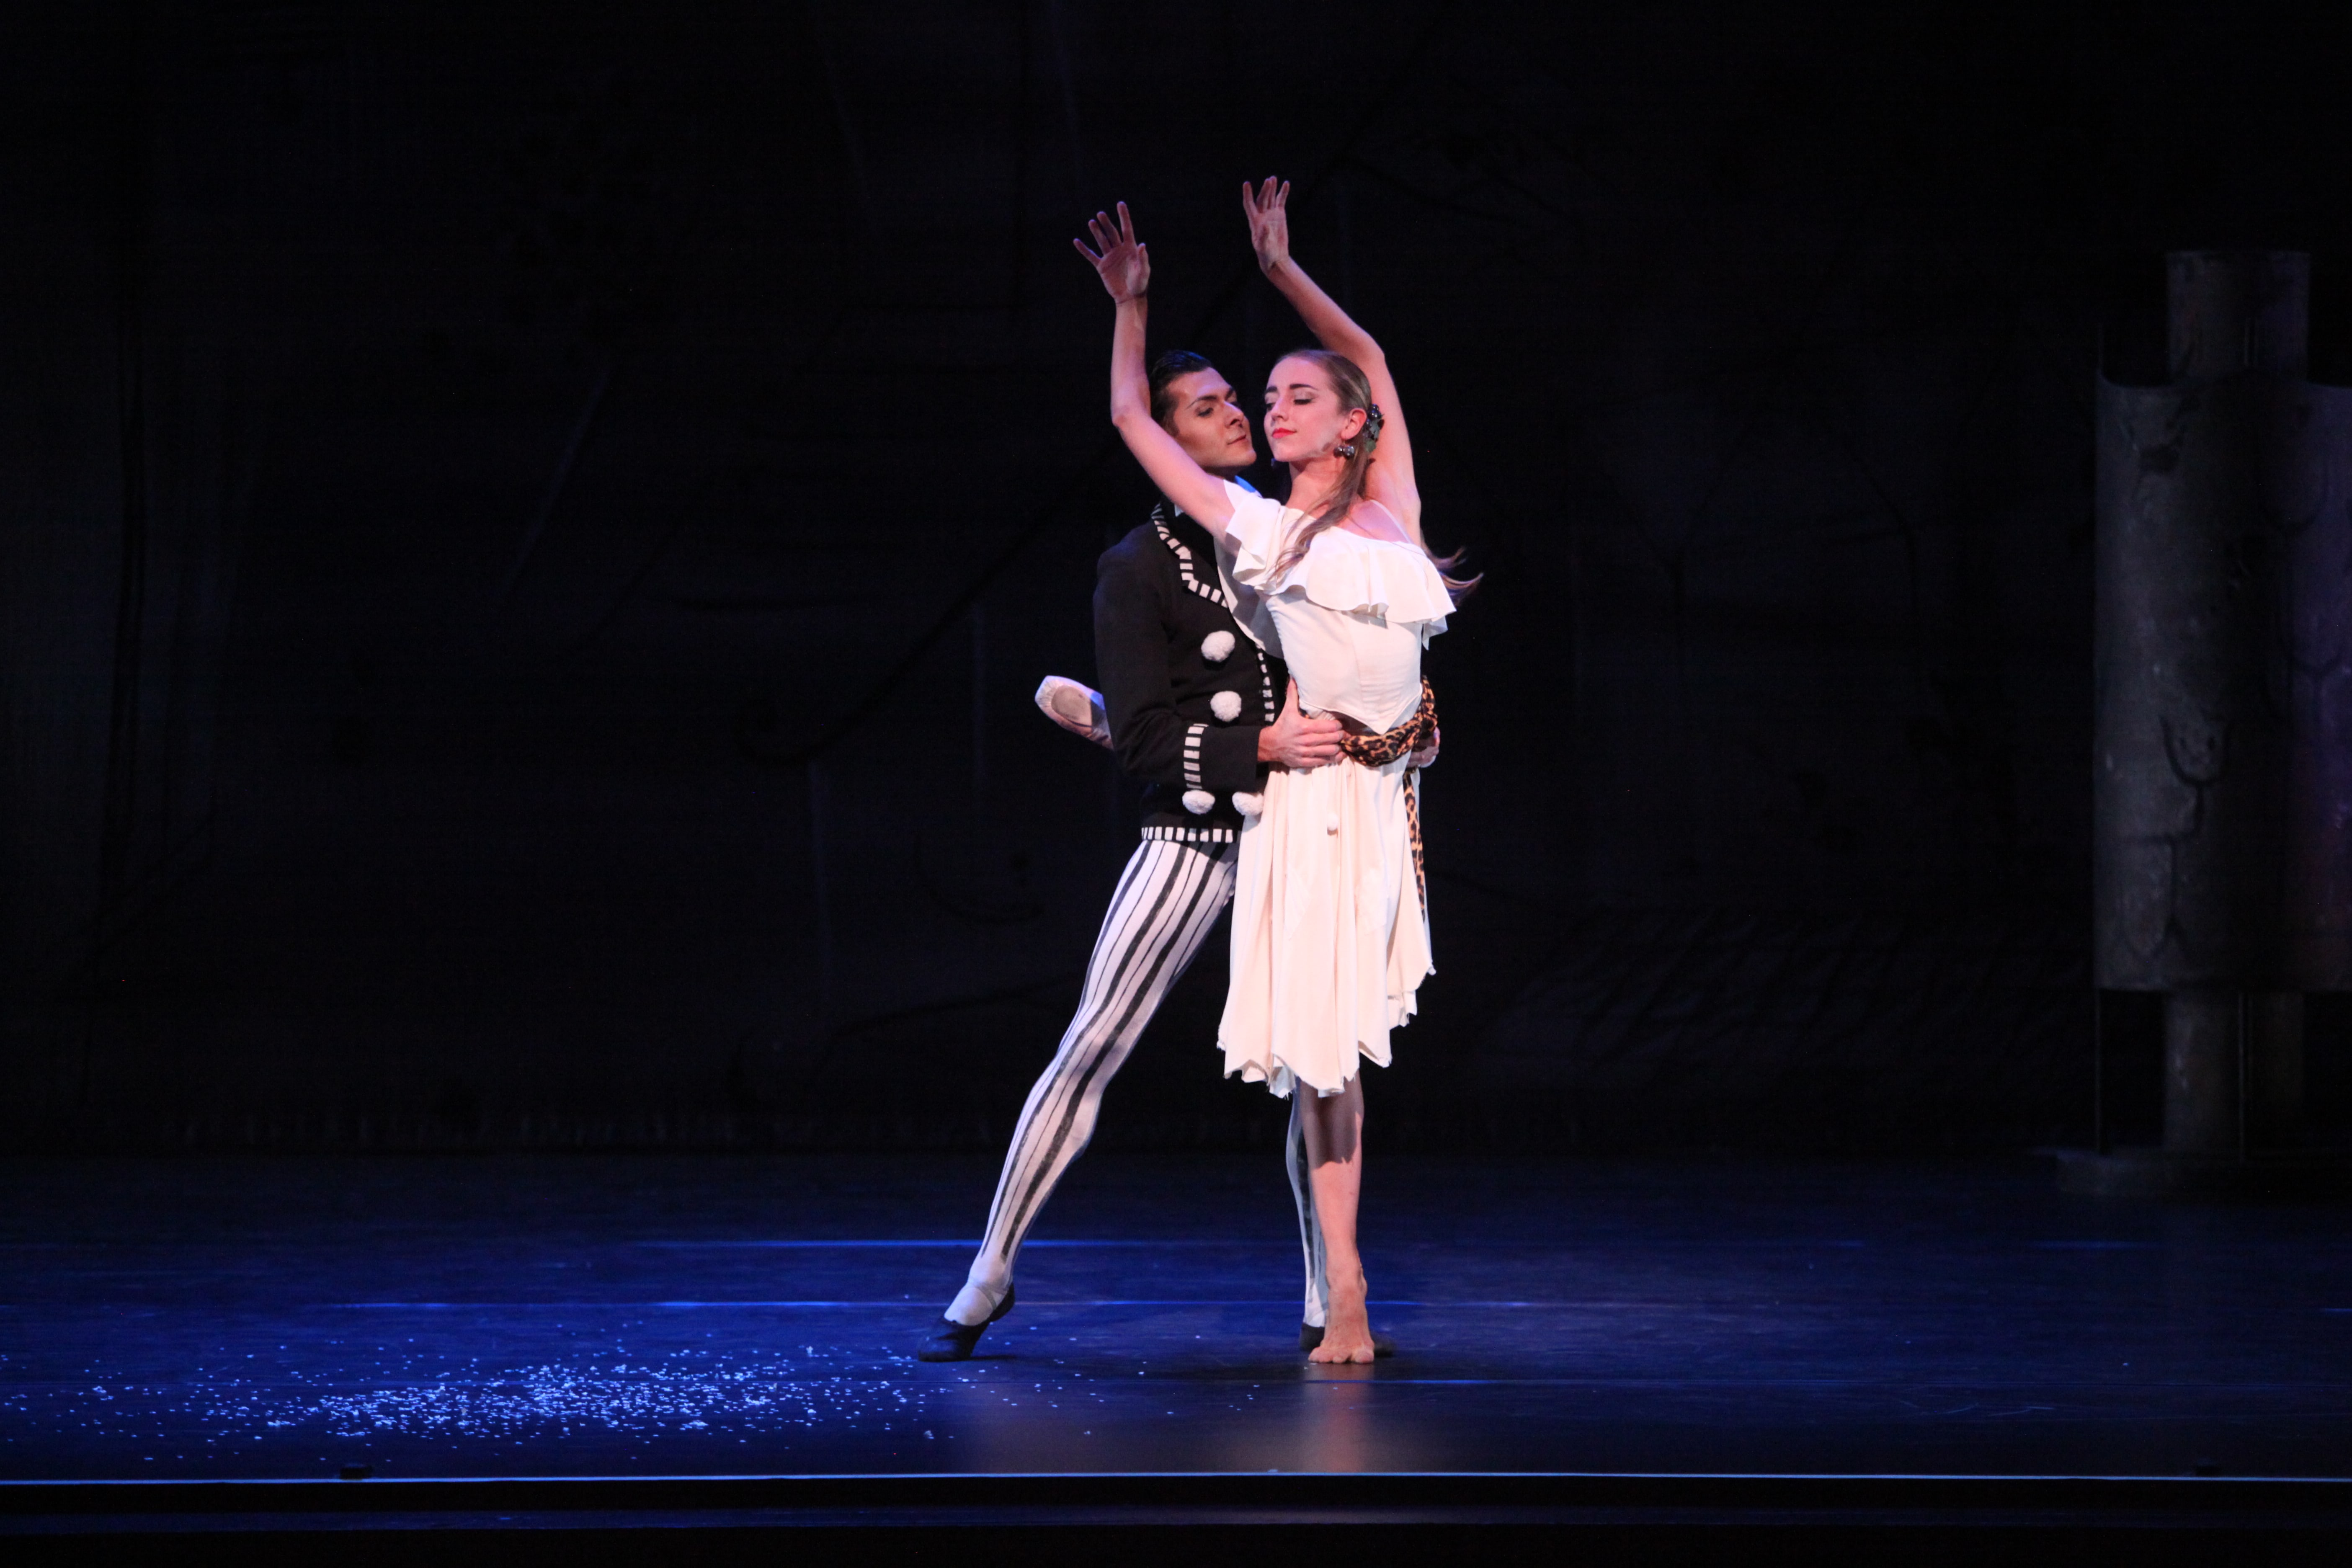 Ellen Overstreet and Ricardo Graziano in Sir Frederick Ashton's Illuminations. Photo by Frank Atura